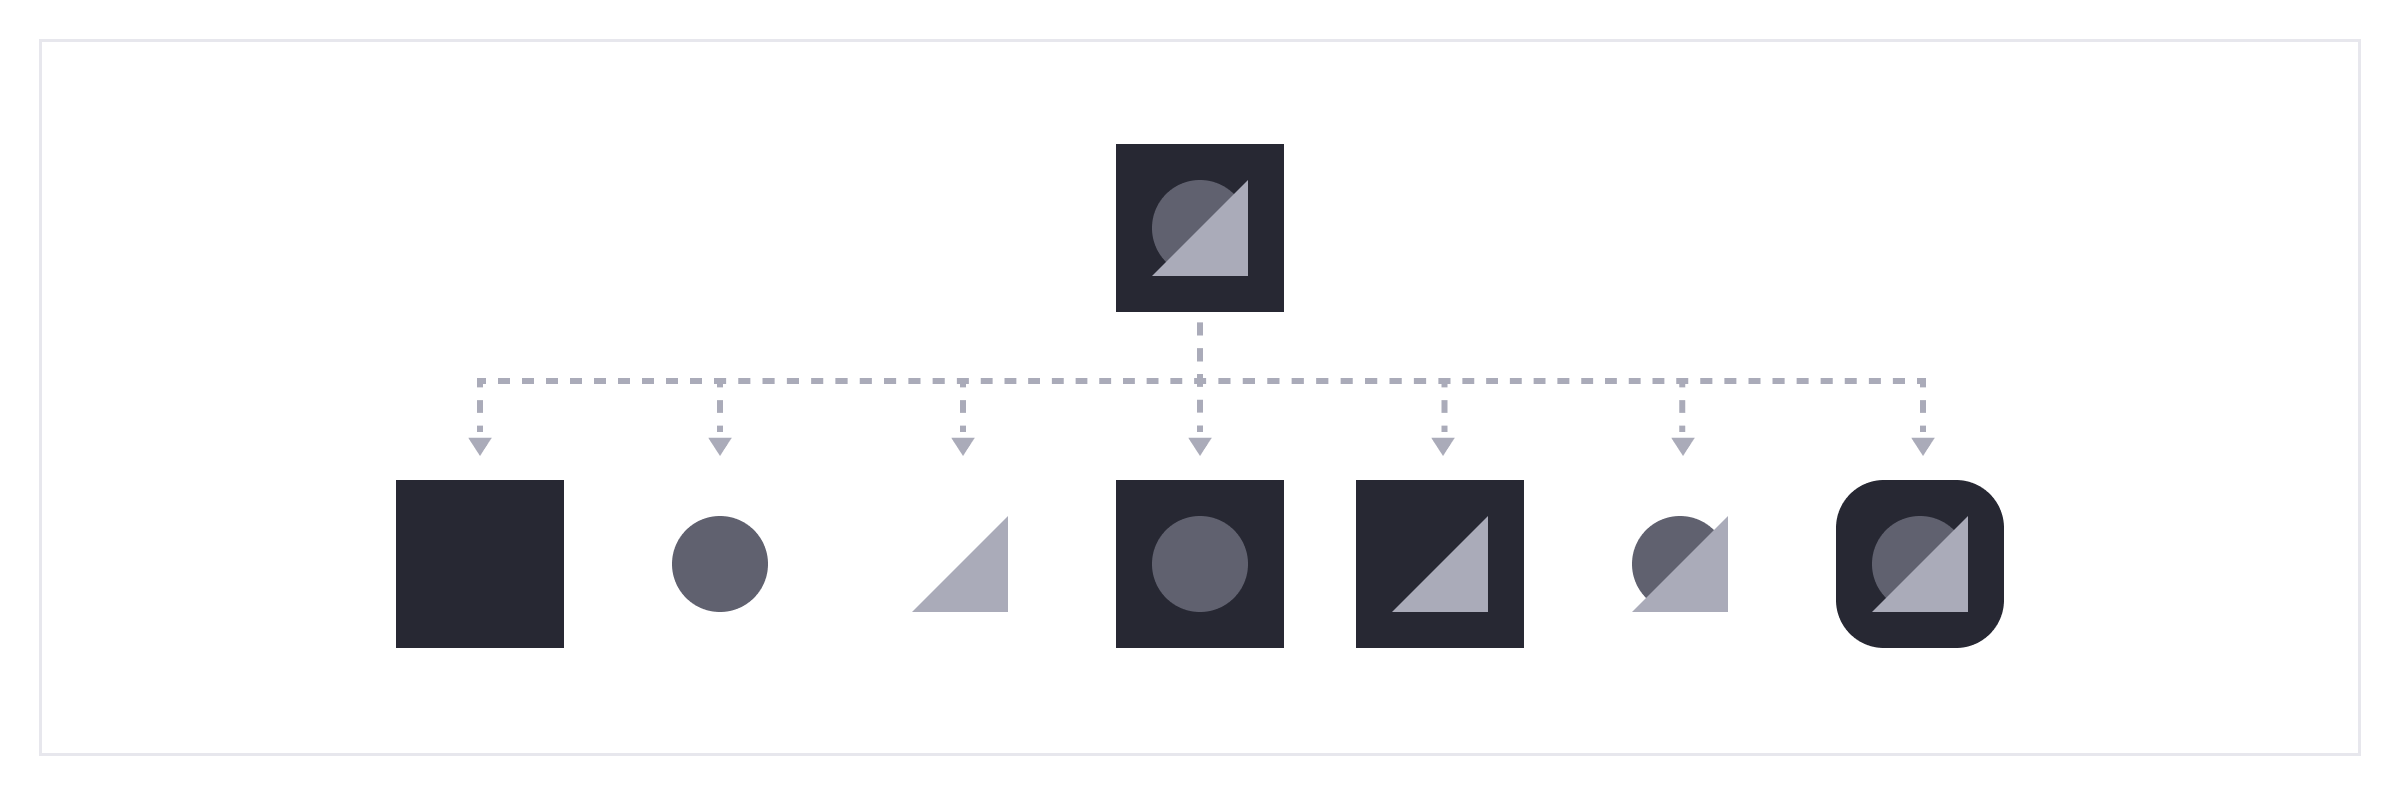 featured image for Building A Component Library Using Figma